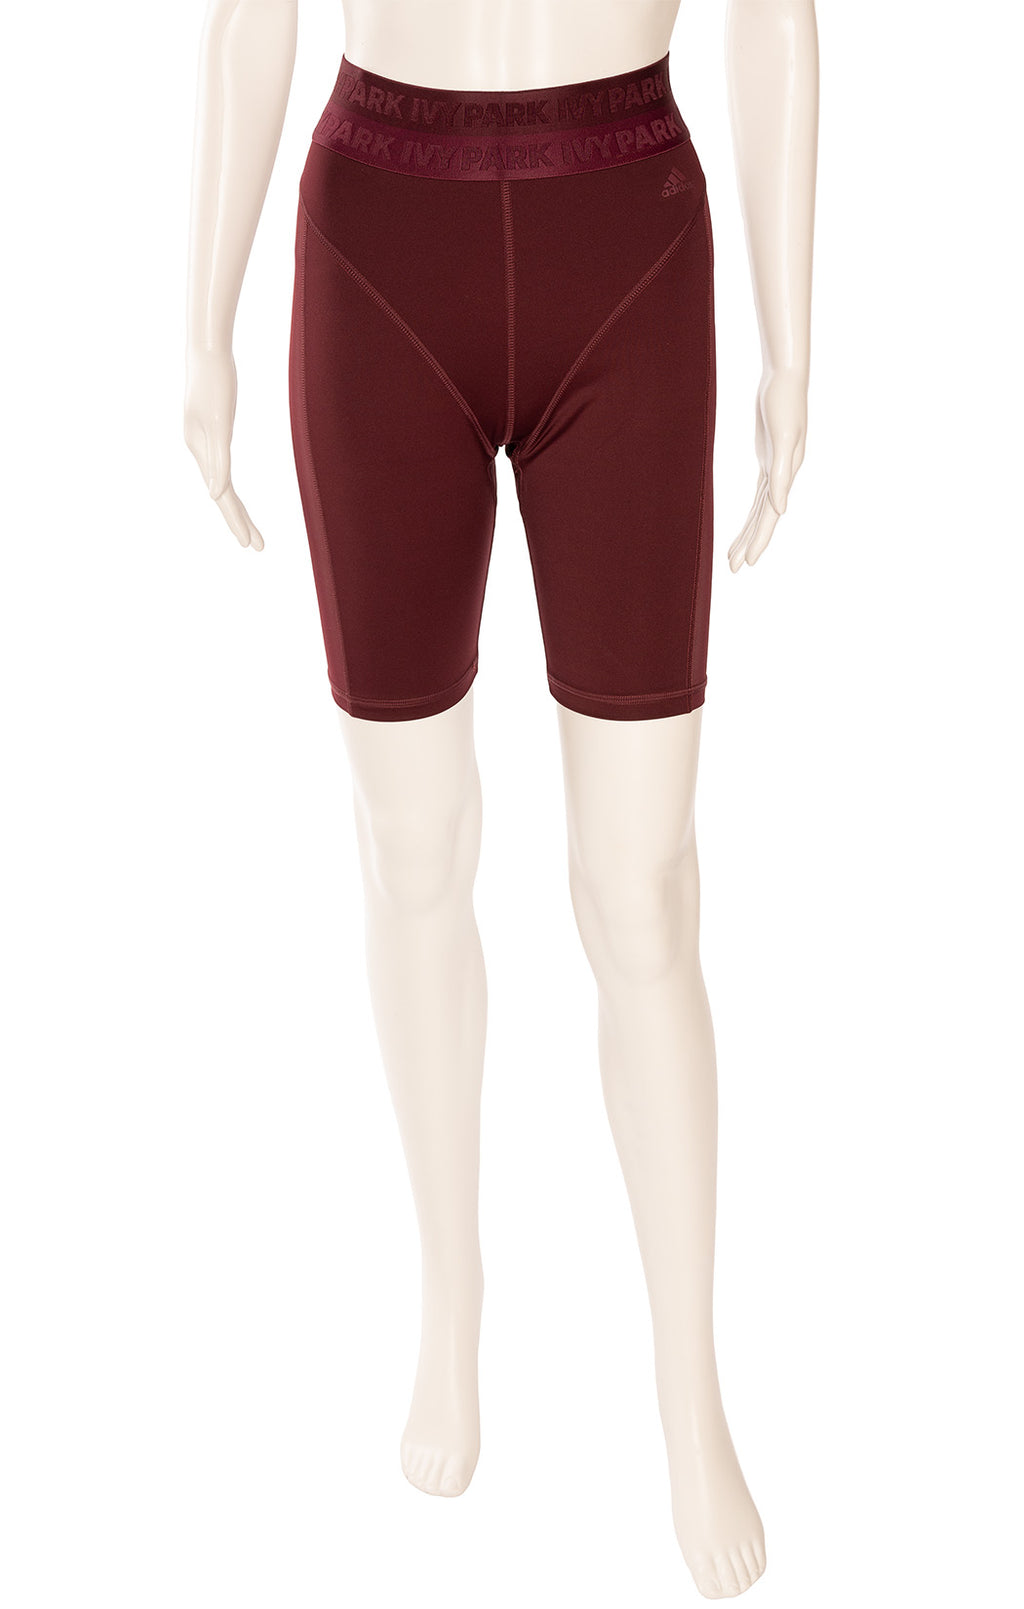 Burgundy form fitting shorts